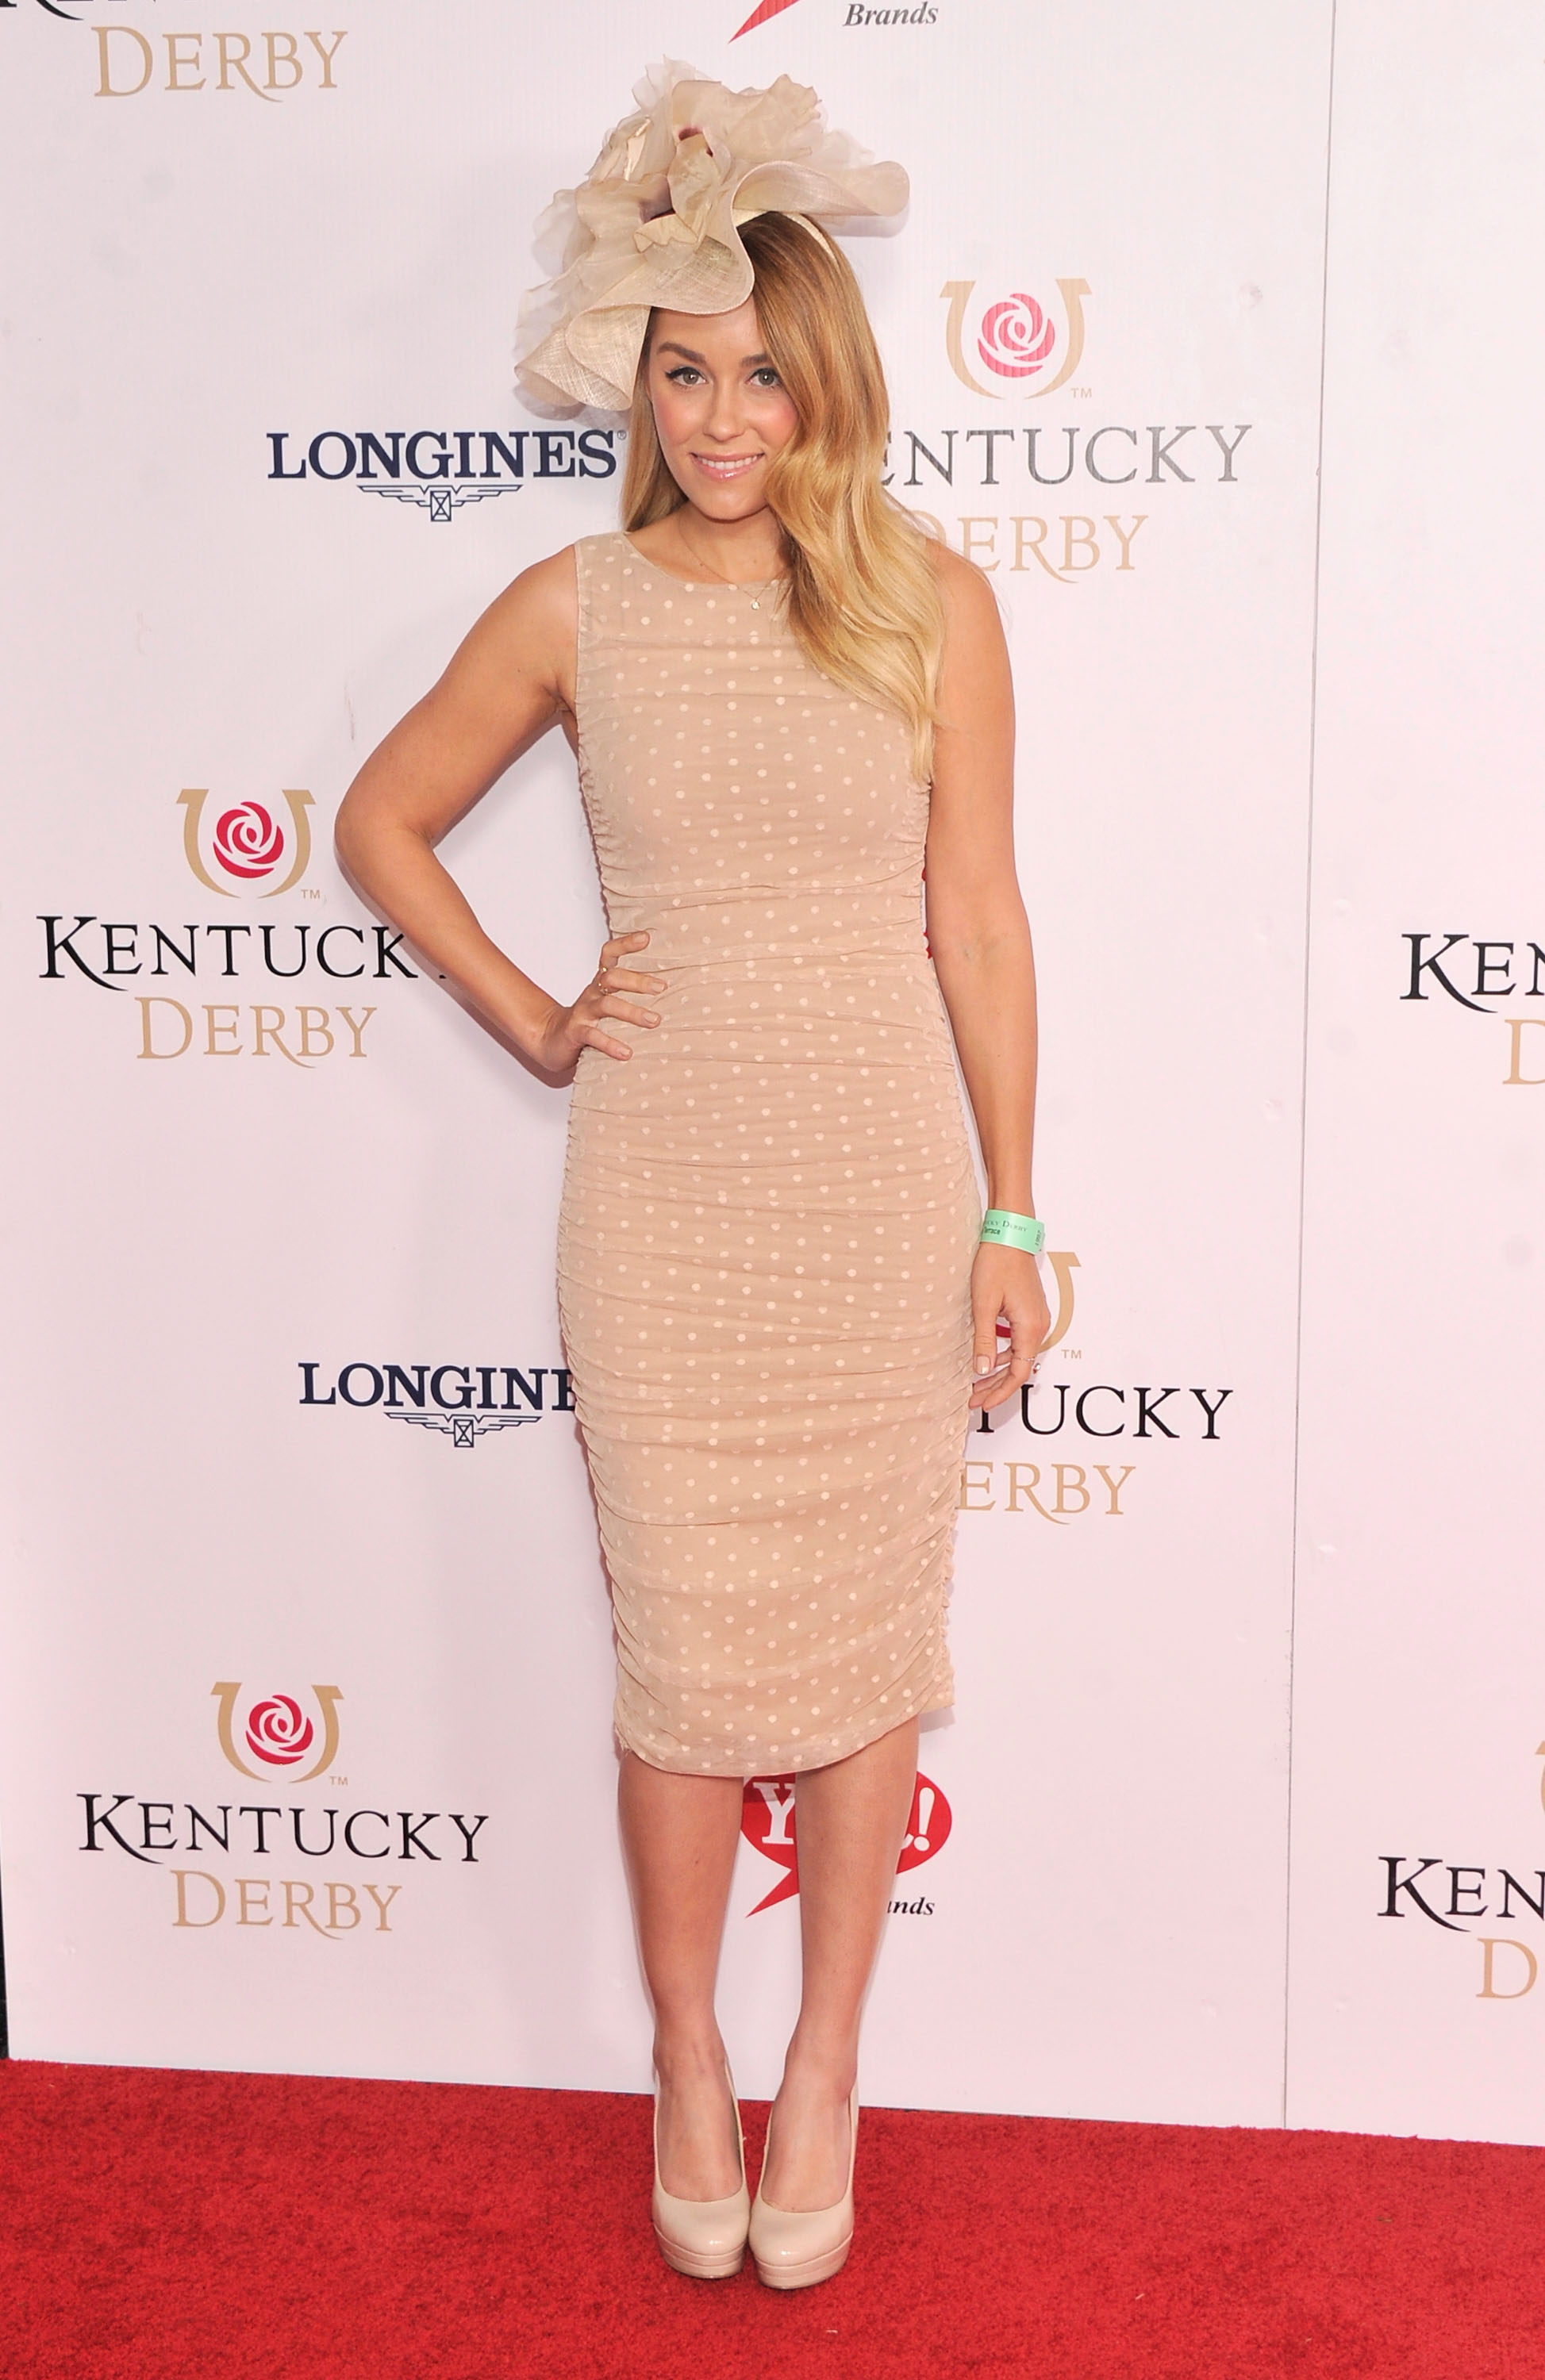 The Kentucky Derby 2013: Style Hits and Misses